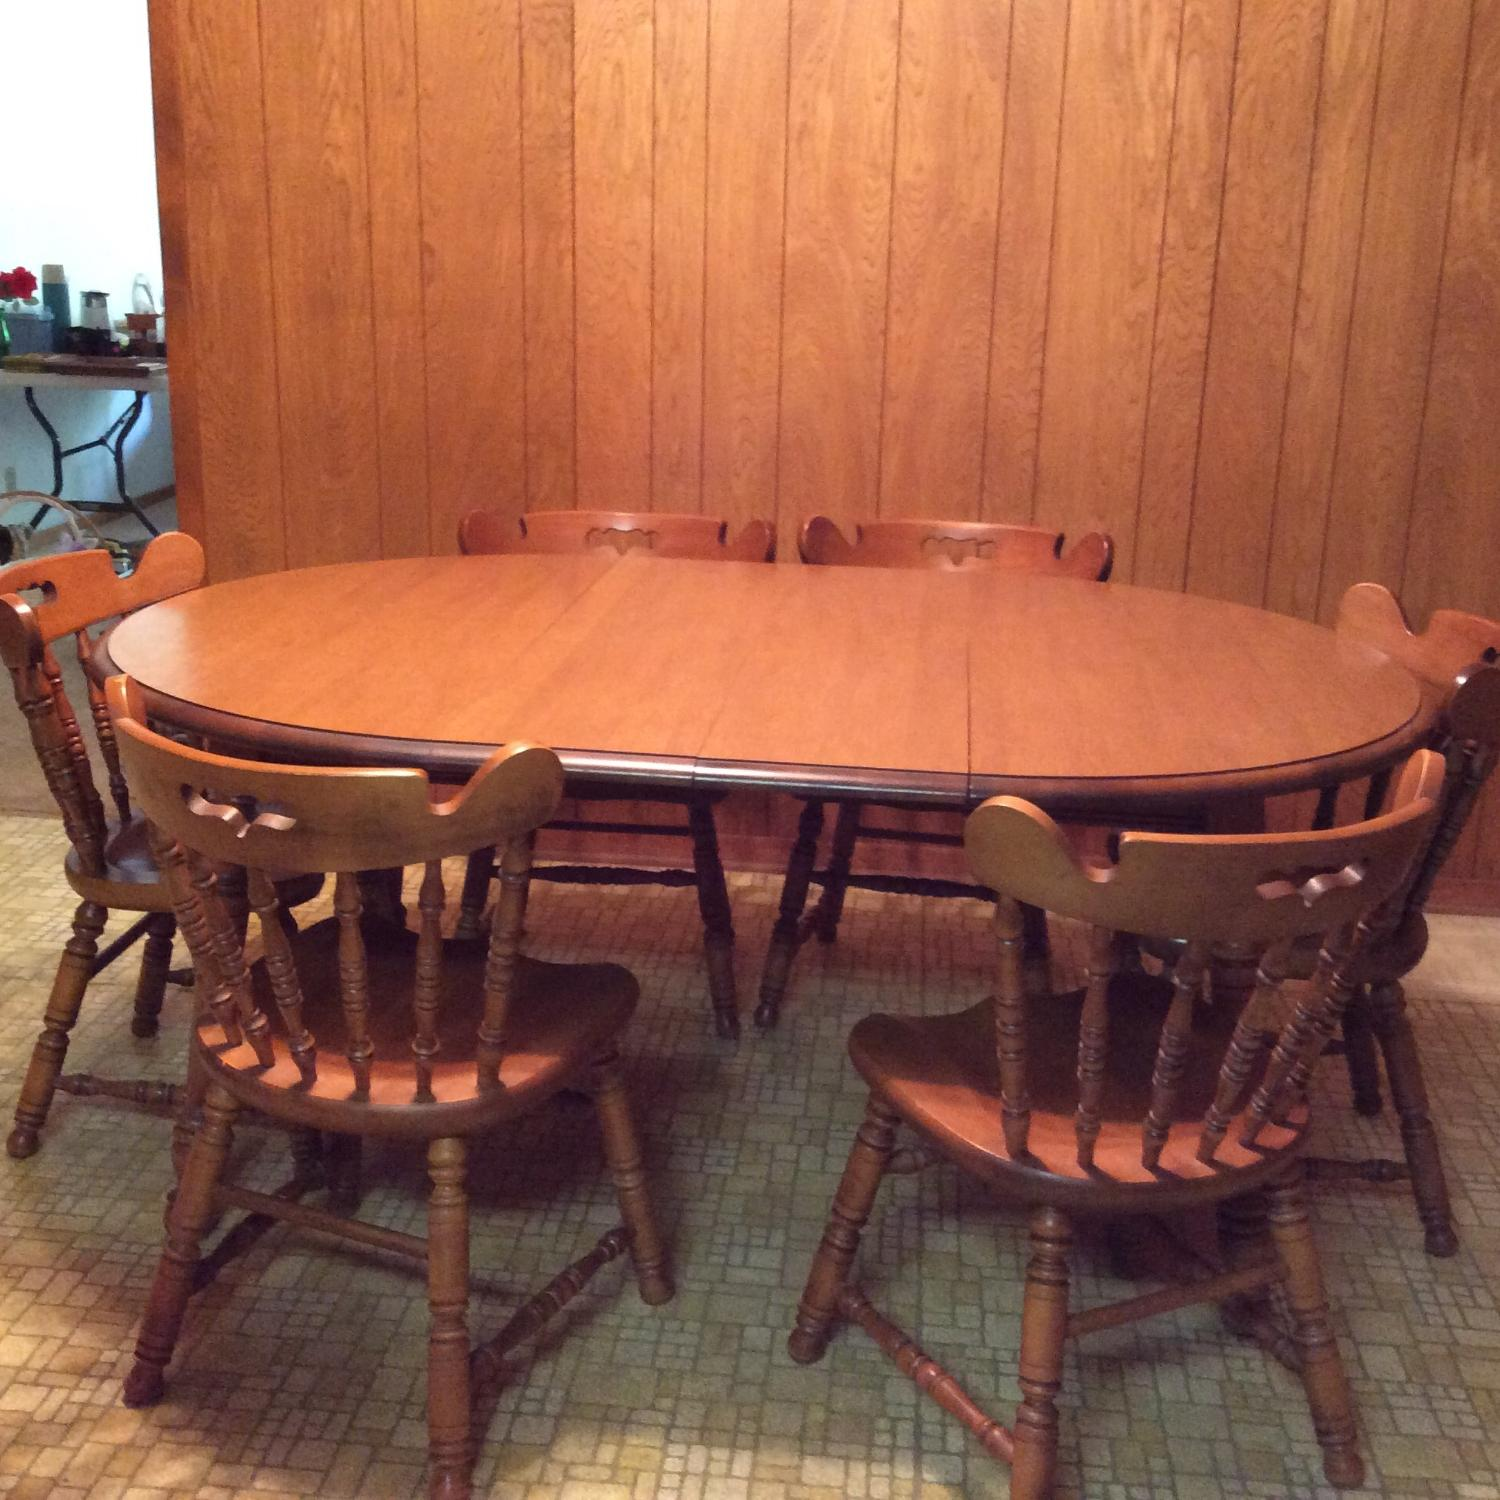 Find More Tell City Table With 6 Chairs For Sale At Up To